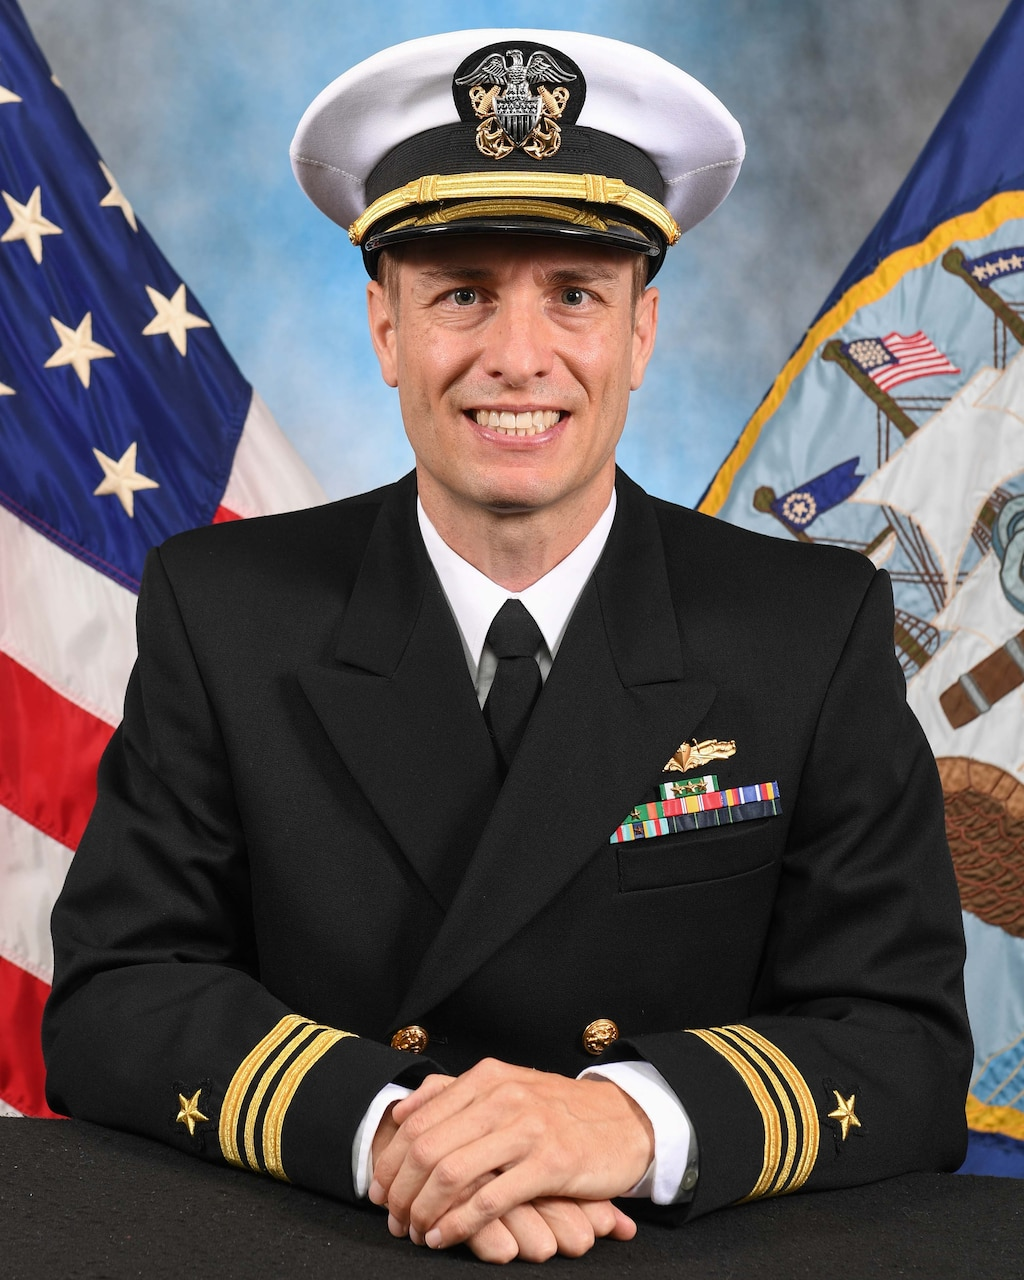 LCDR Justin L. Guernsey